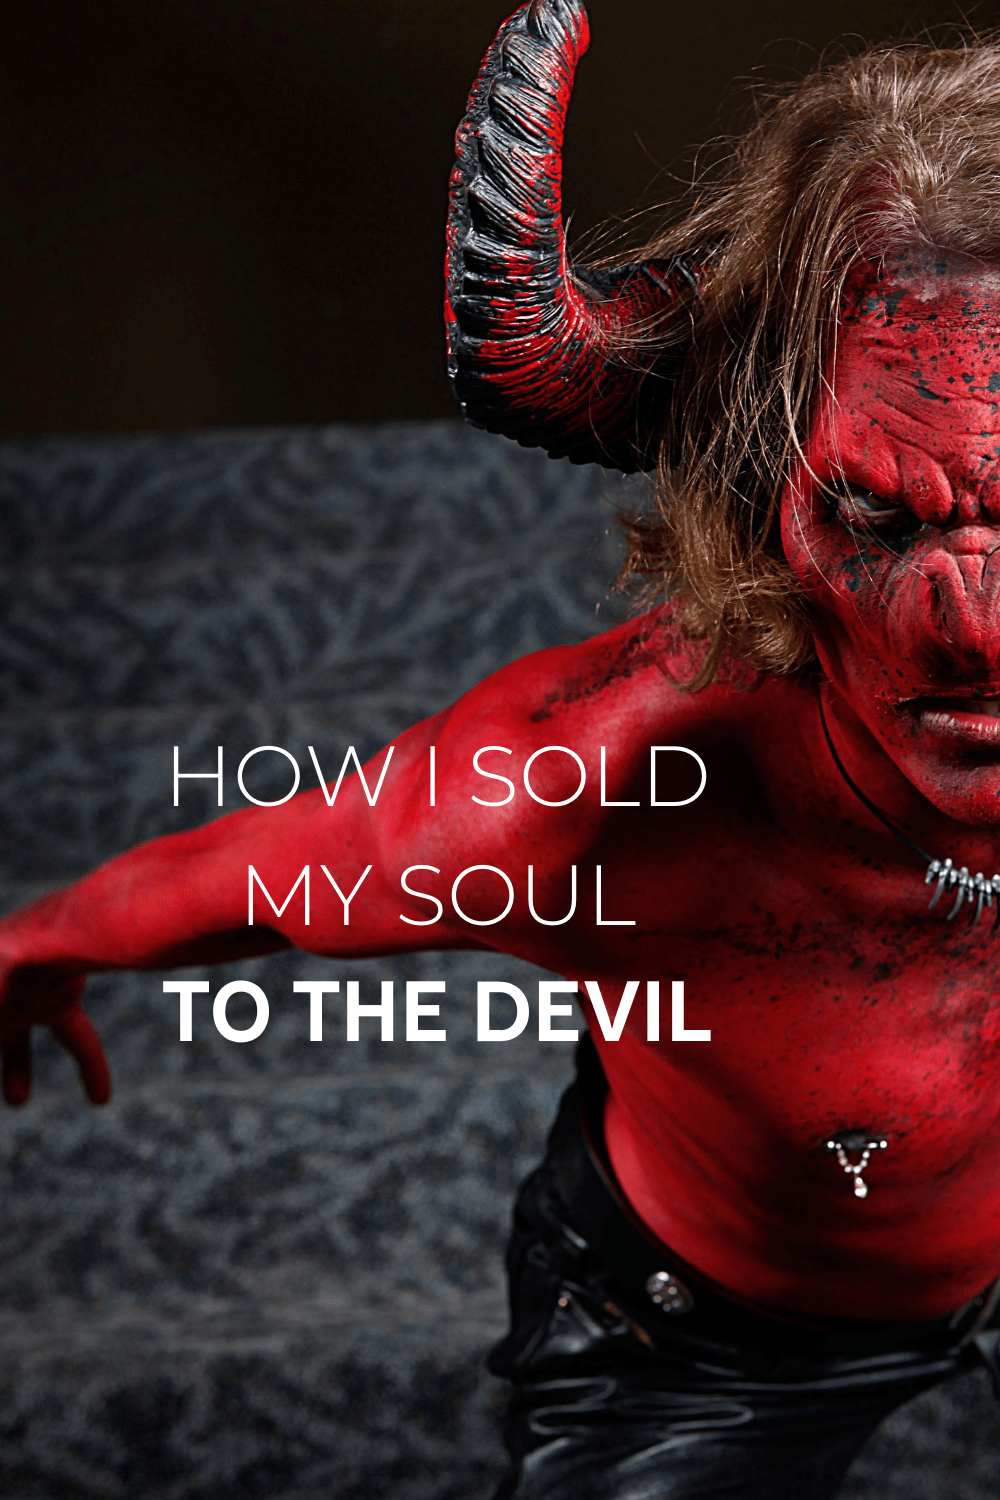 How I sold my soul to the devil